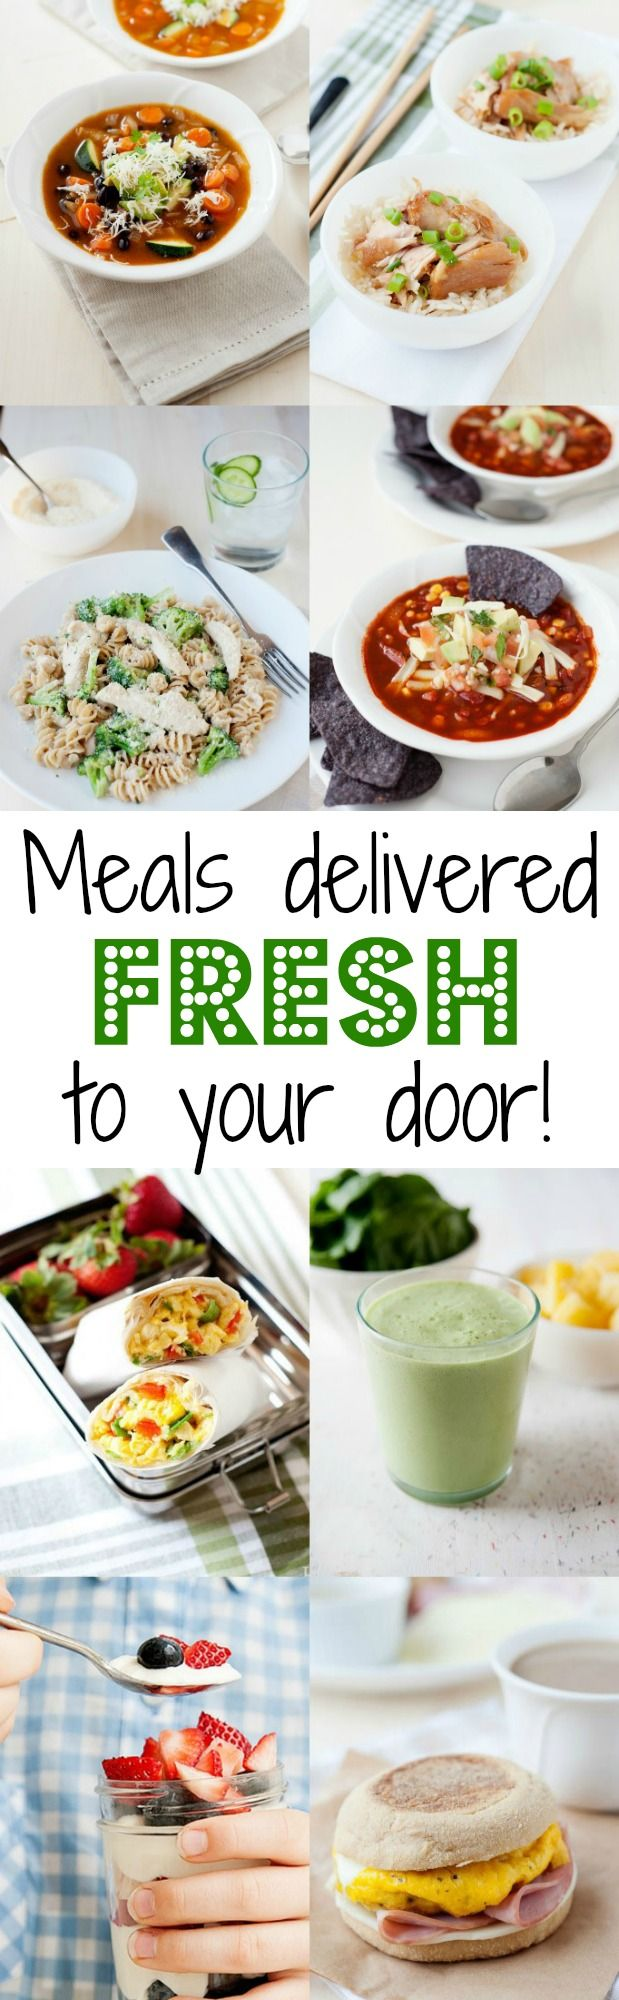 Made-to-order, fresh meals delivered straight to your door with the MOMables Meal Delivery! Meals include breakfasts, lunch, snacks, and dinner!